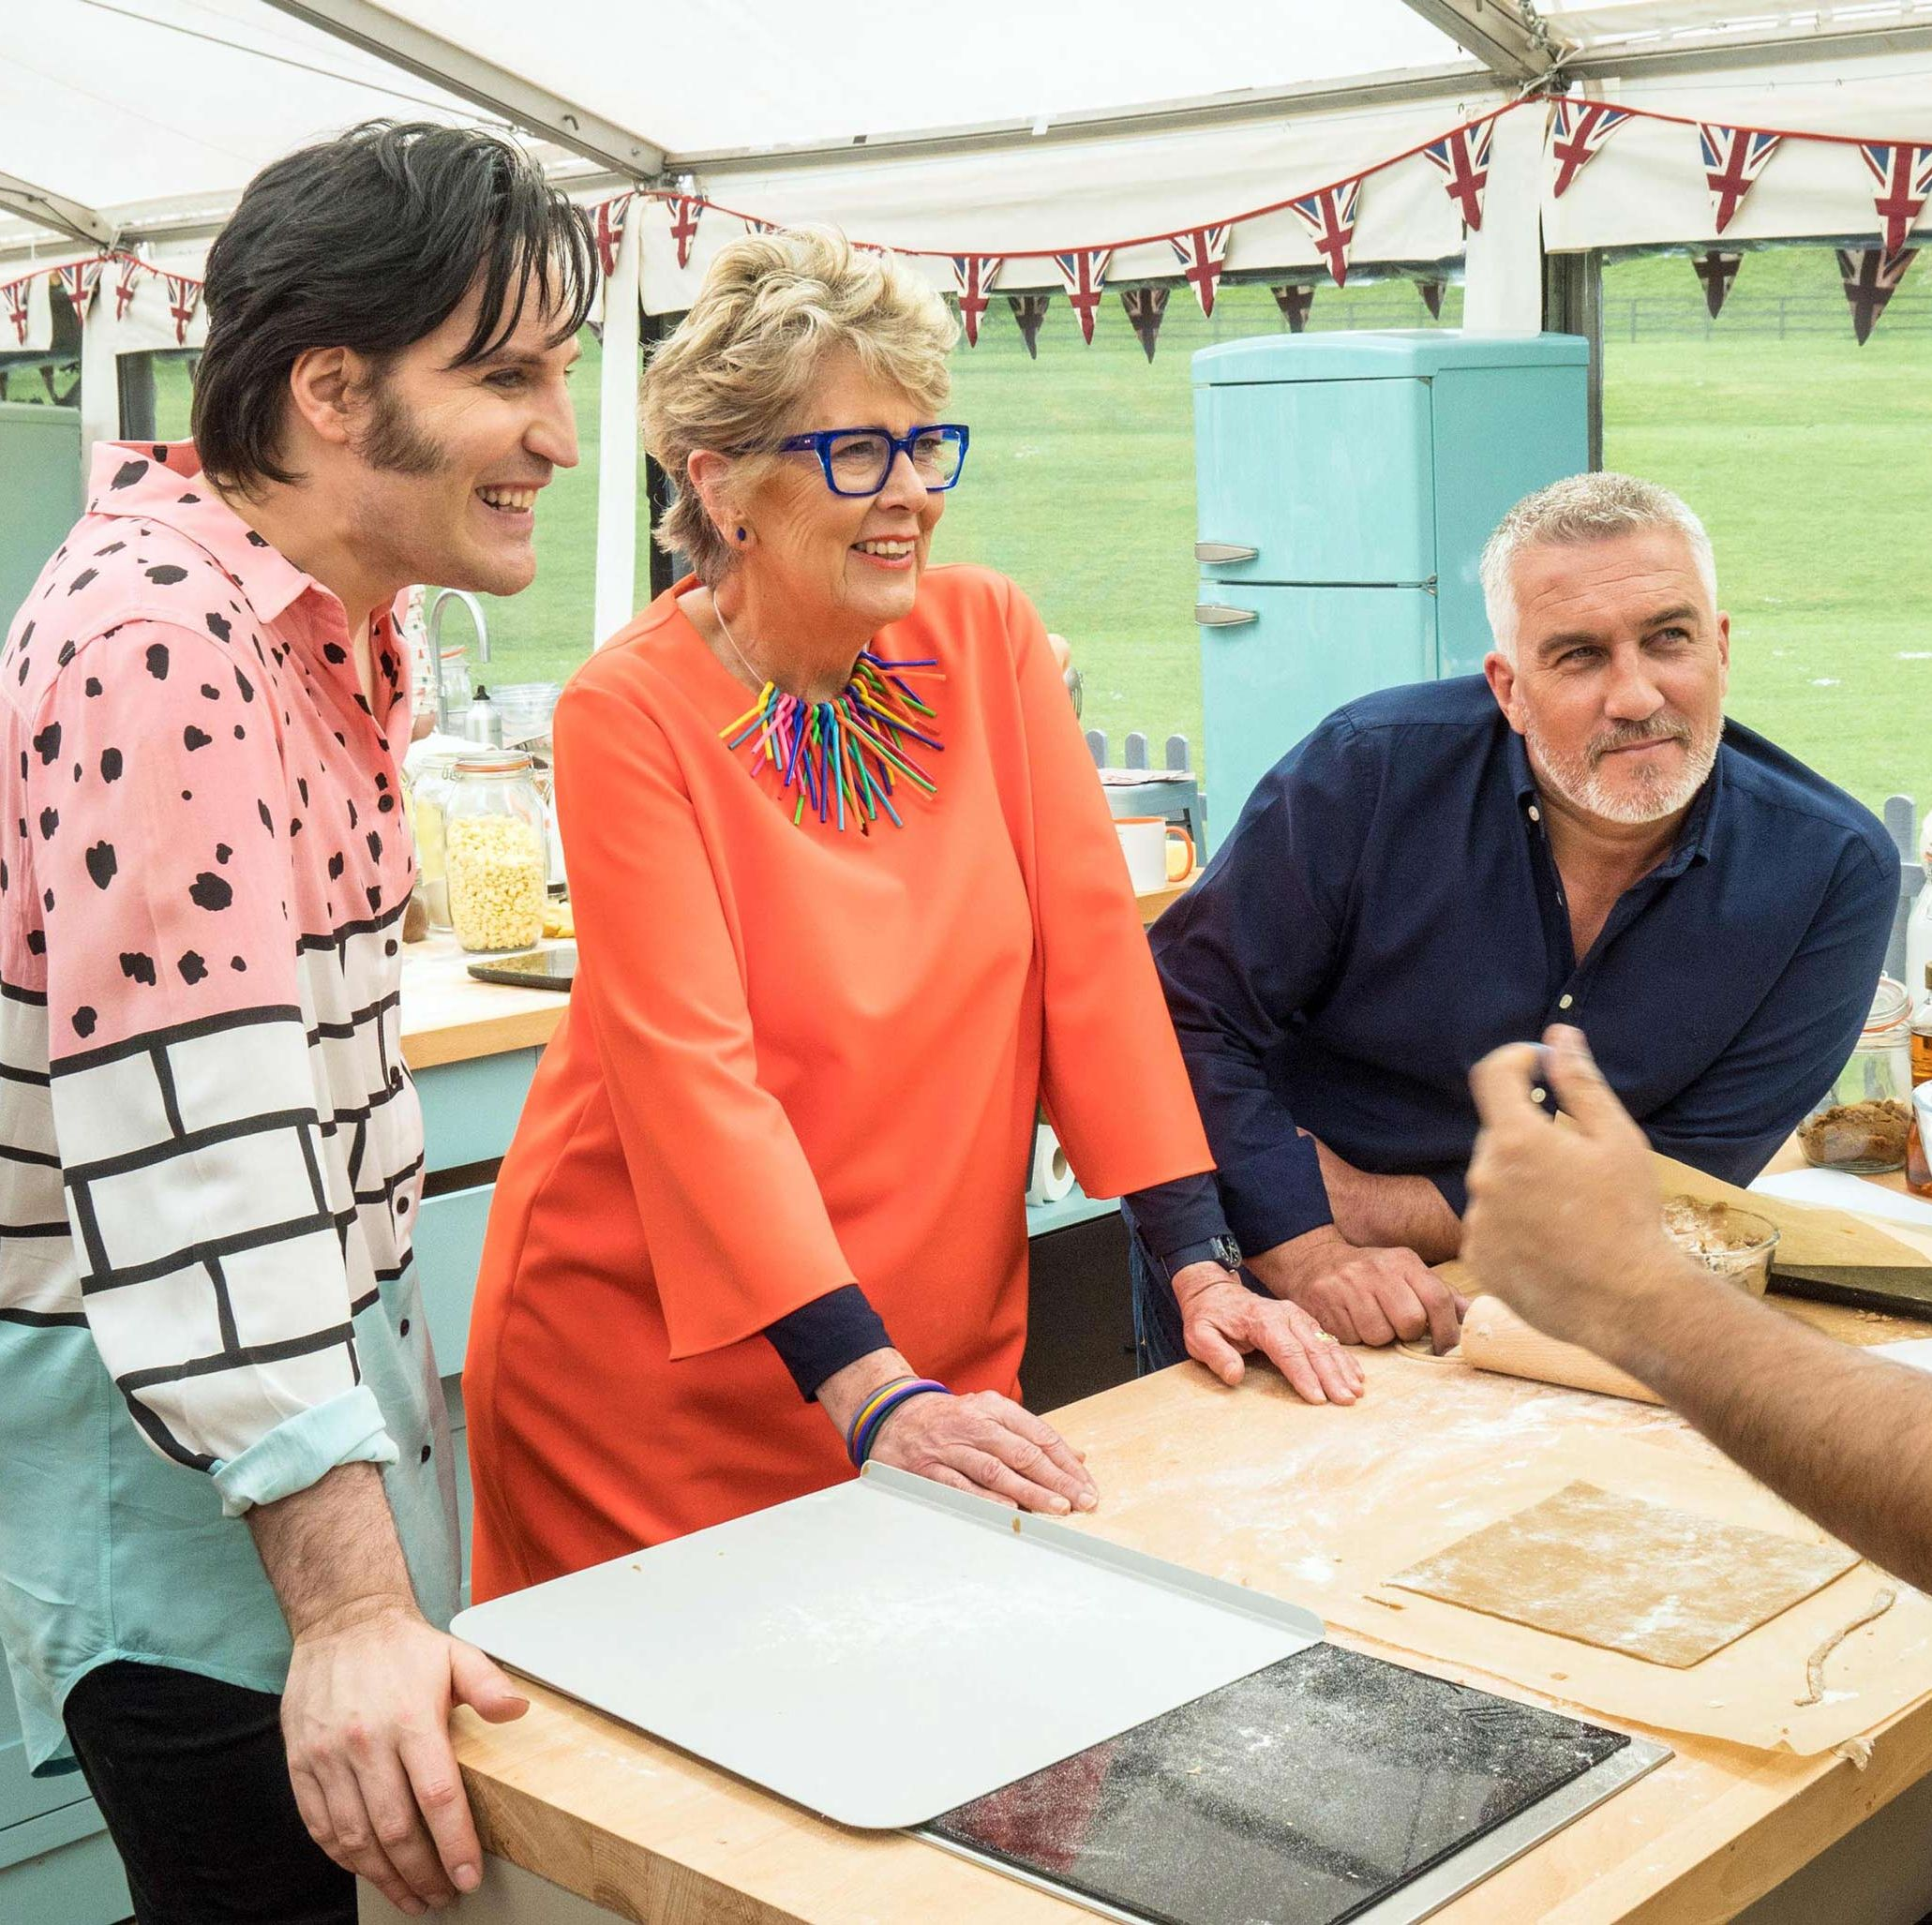 The Great British Bake Off's future is confirmed – along with a brand new spin-off series